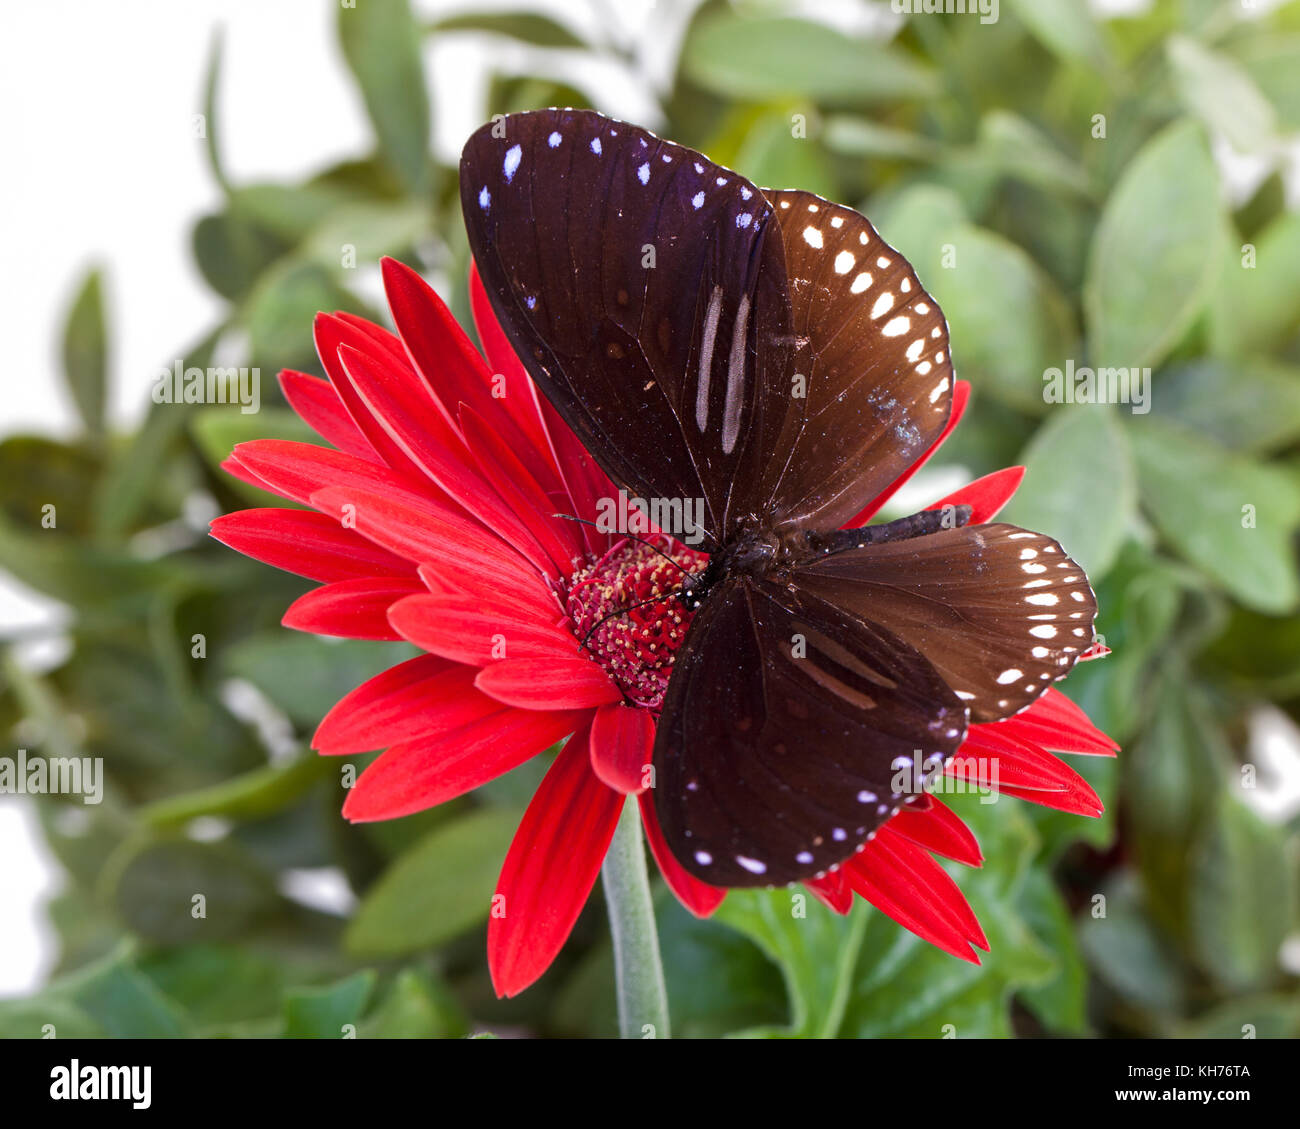 Striped Blue Crow Butterfly (Euploea sylvester harrisii) on Red Gerbera Daisy - Stock Image